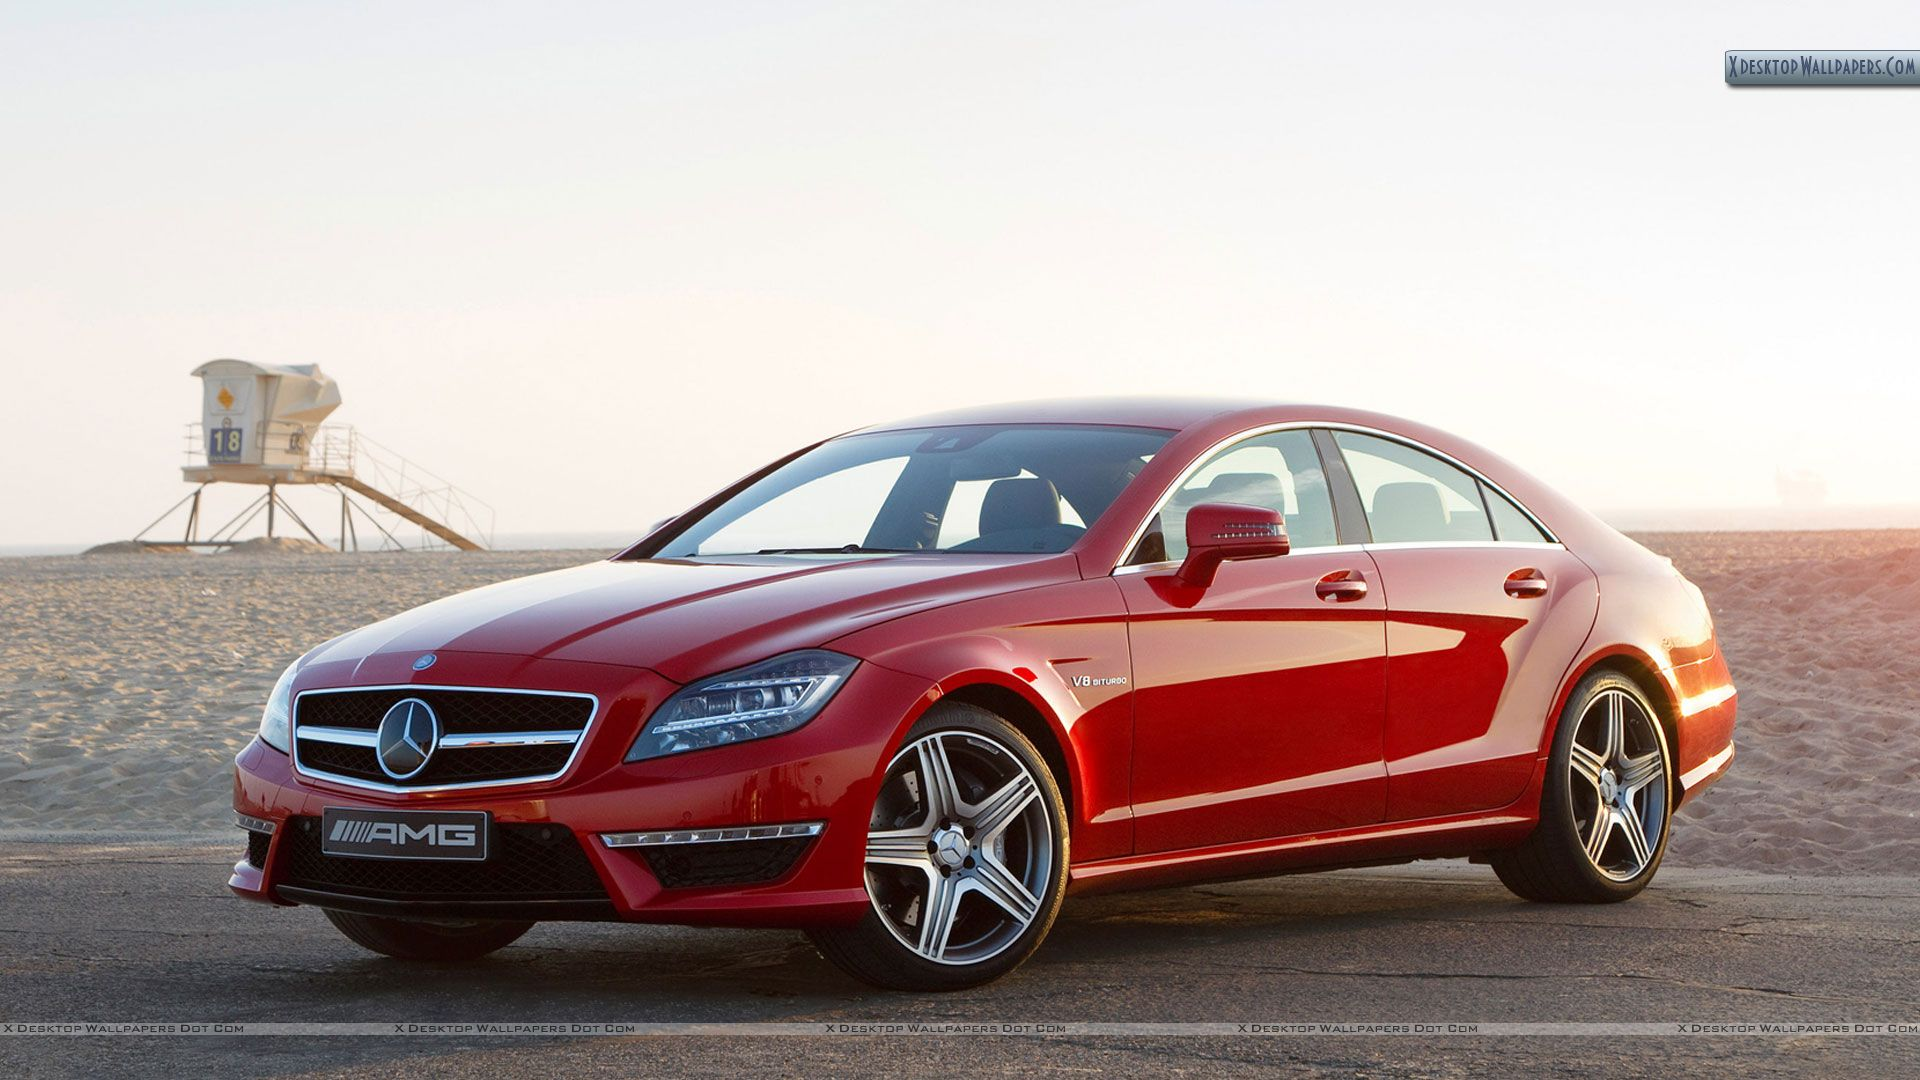 2012 mercedes benz cls63 amg red color wallpaper for Mercedes benz cars images